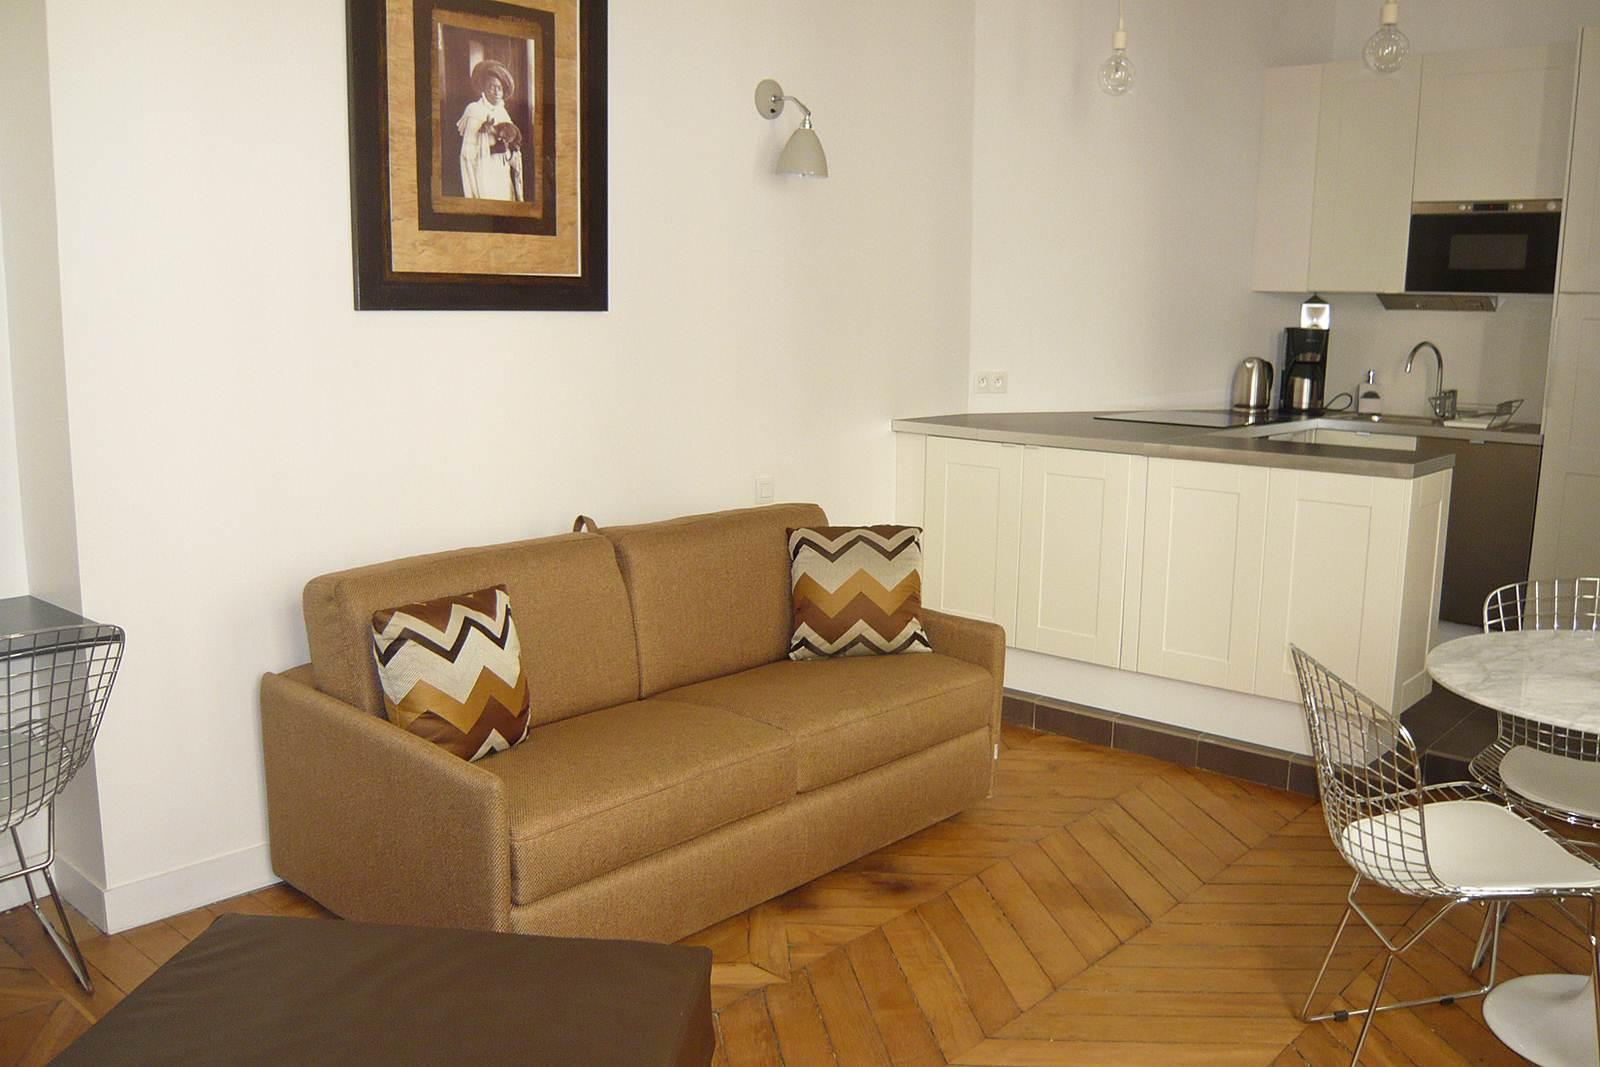 S01431 - Chic studio for 3 people near the Louvre